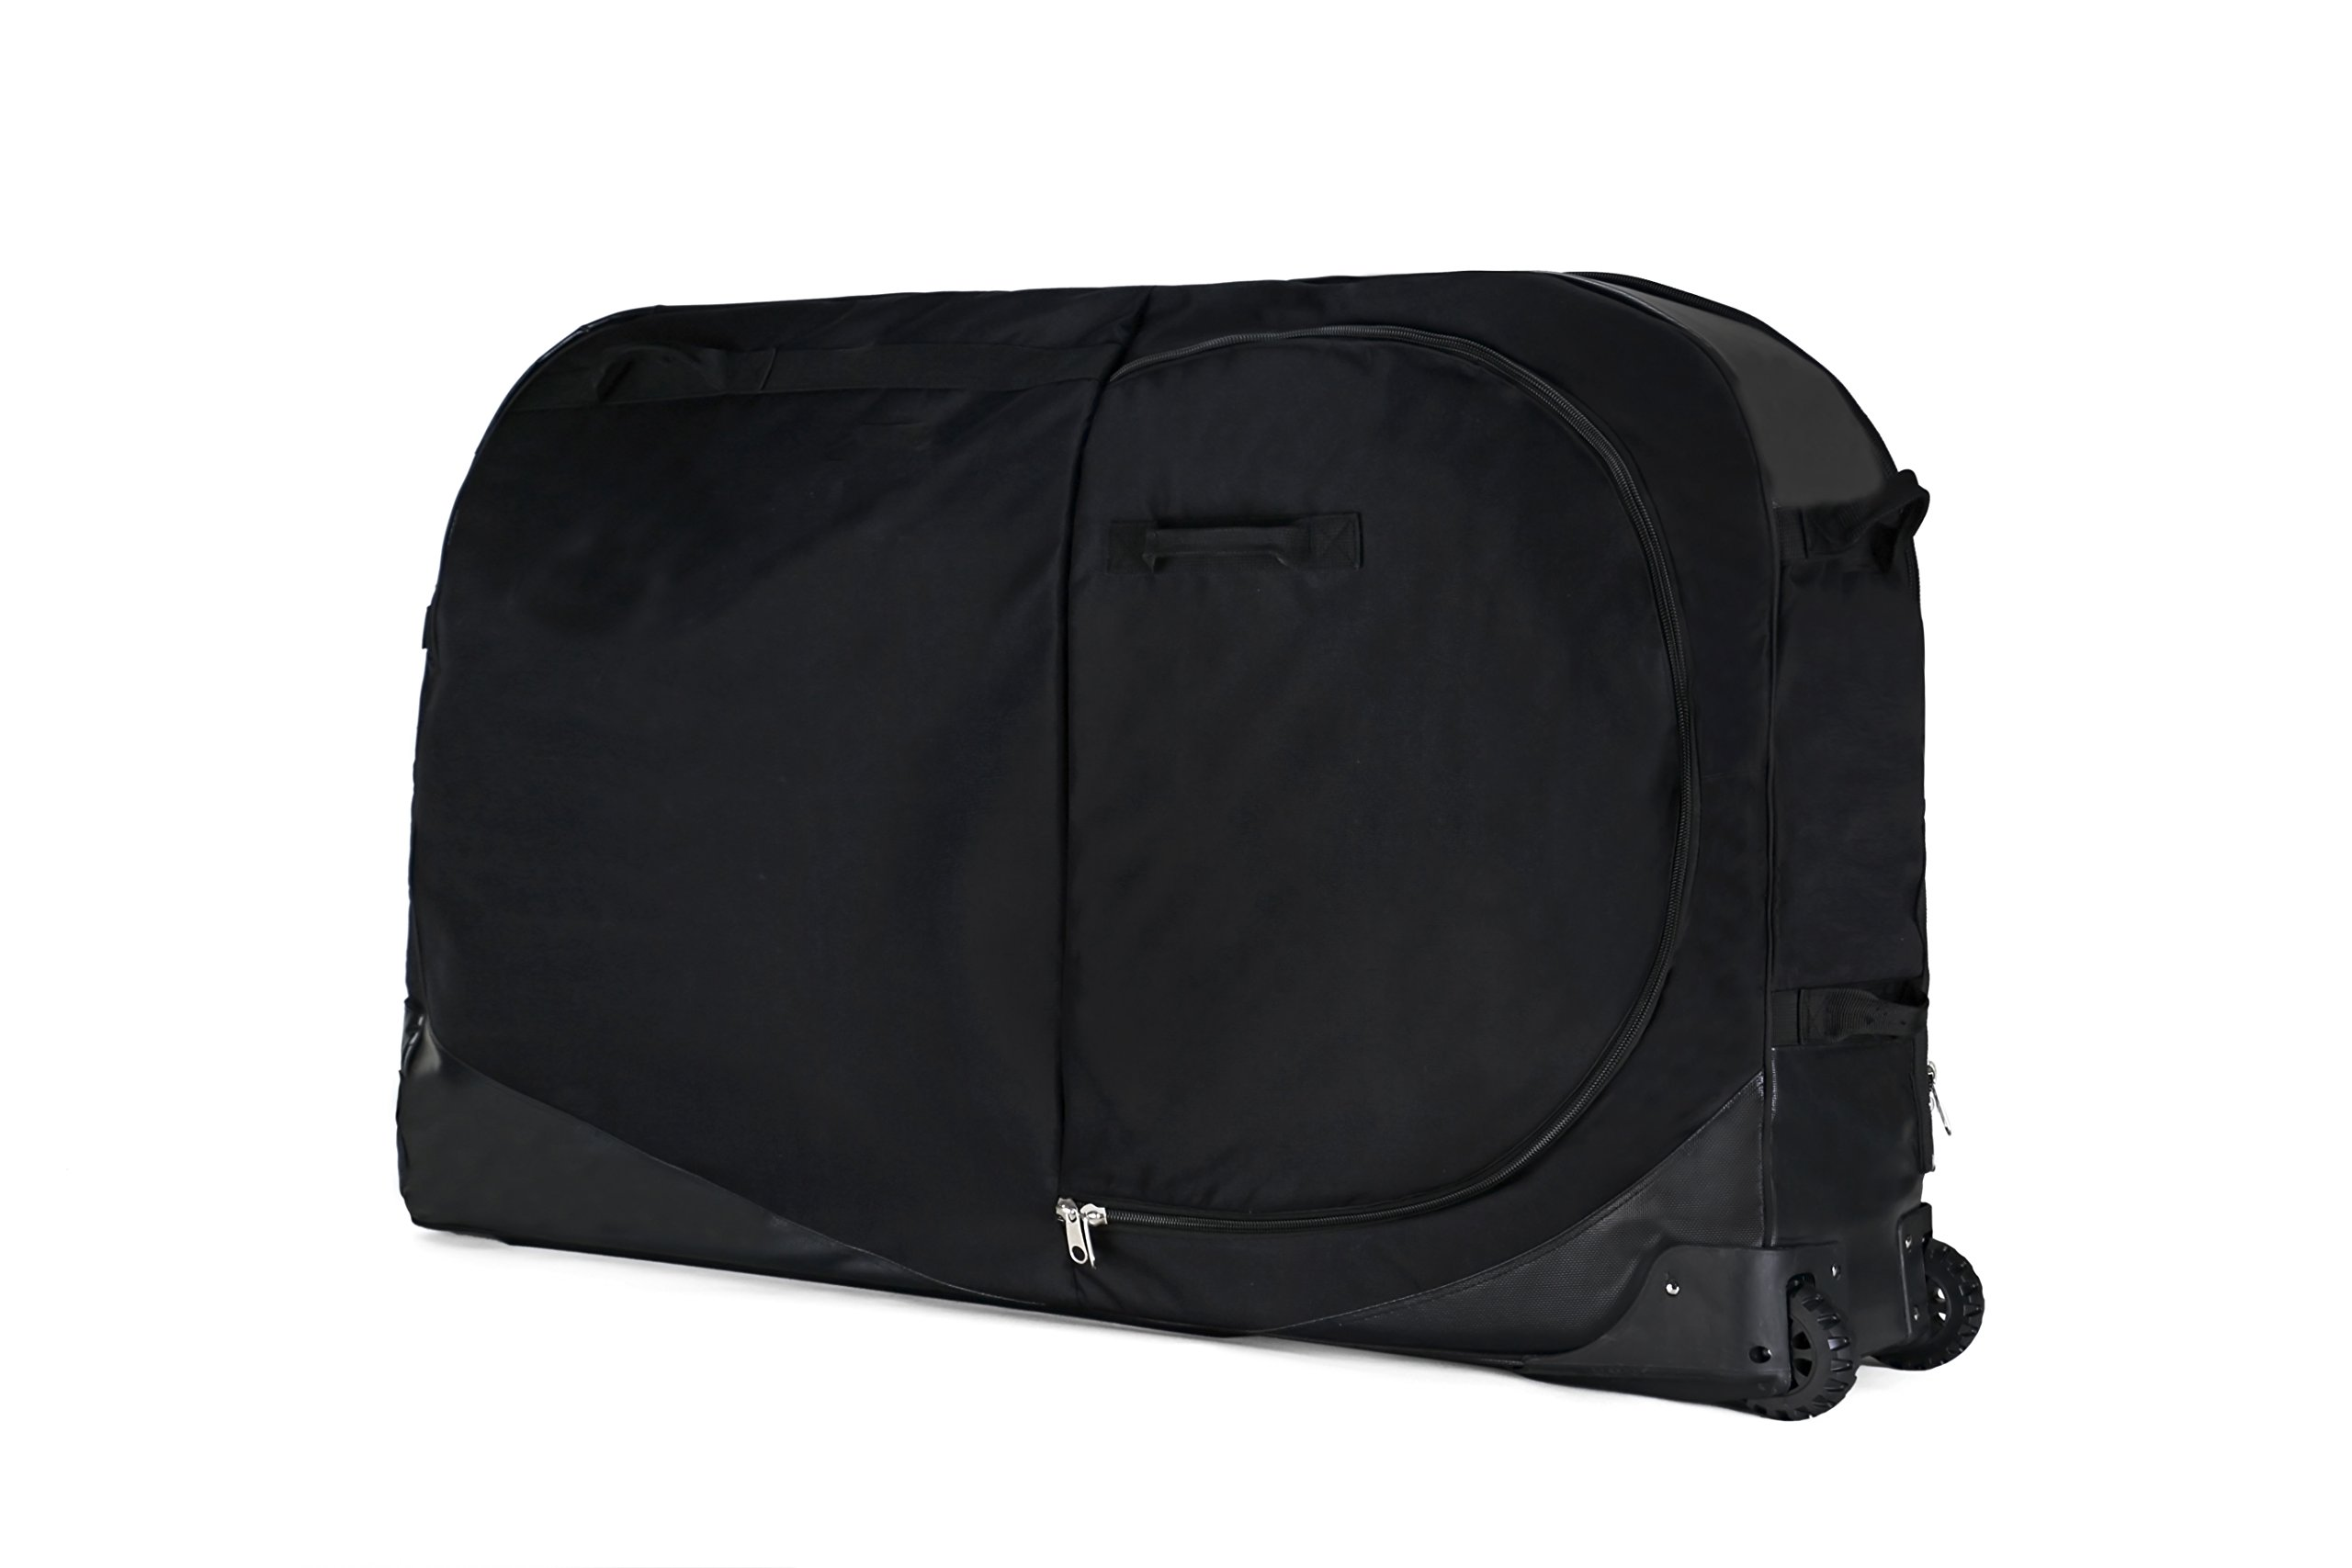 Swane high end 27.5 inch padded Bike Travel Bag with wheels Cycling Transport Bag